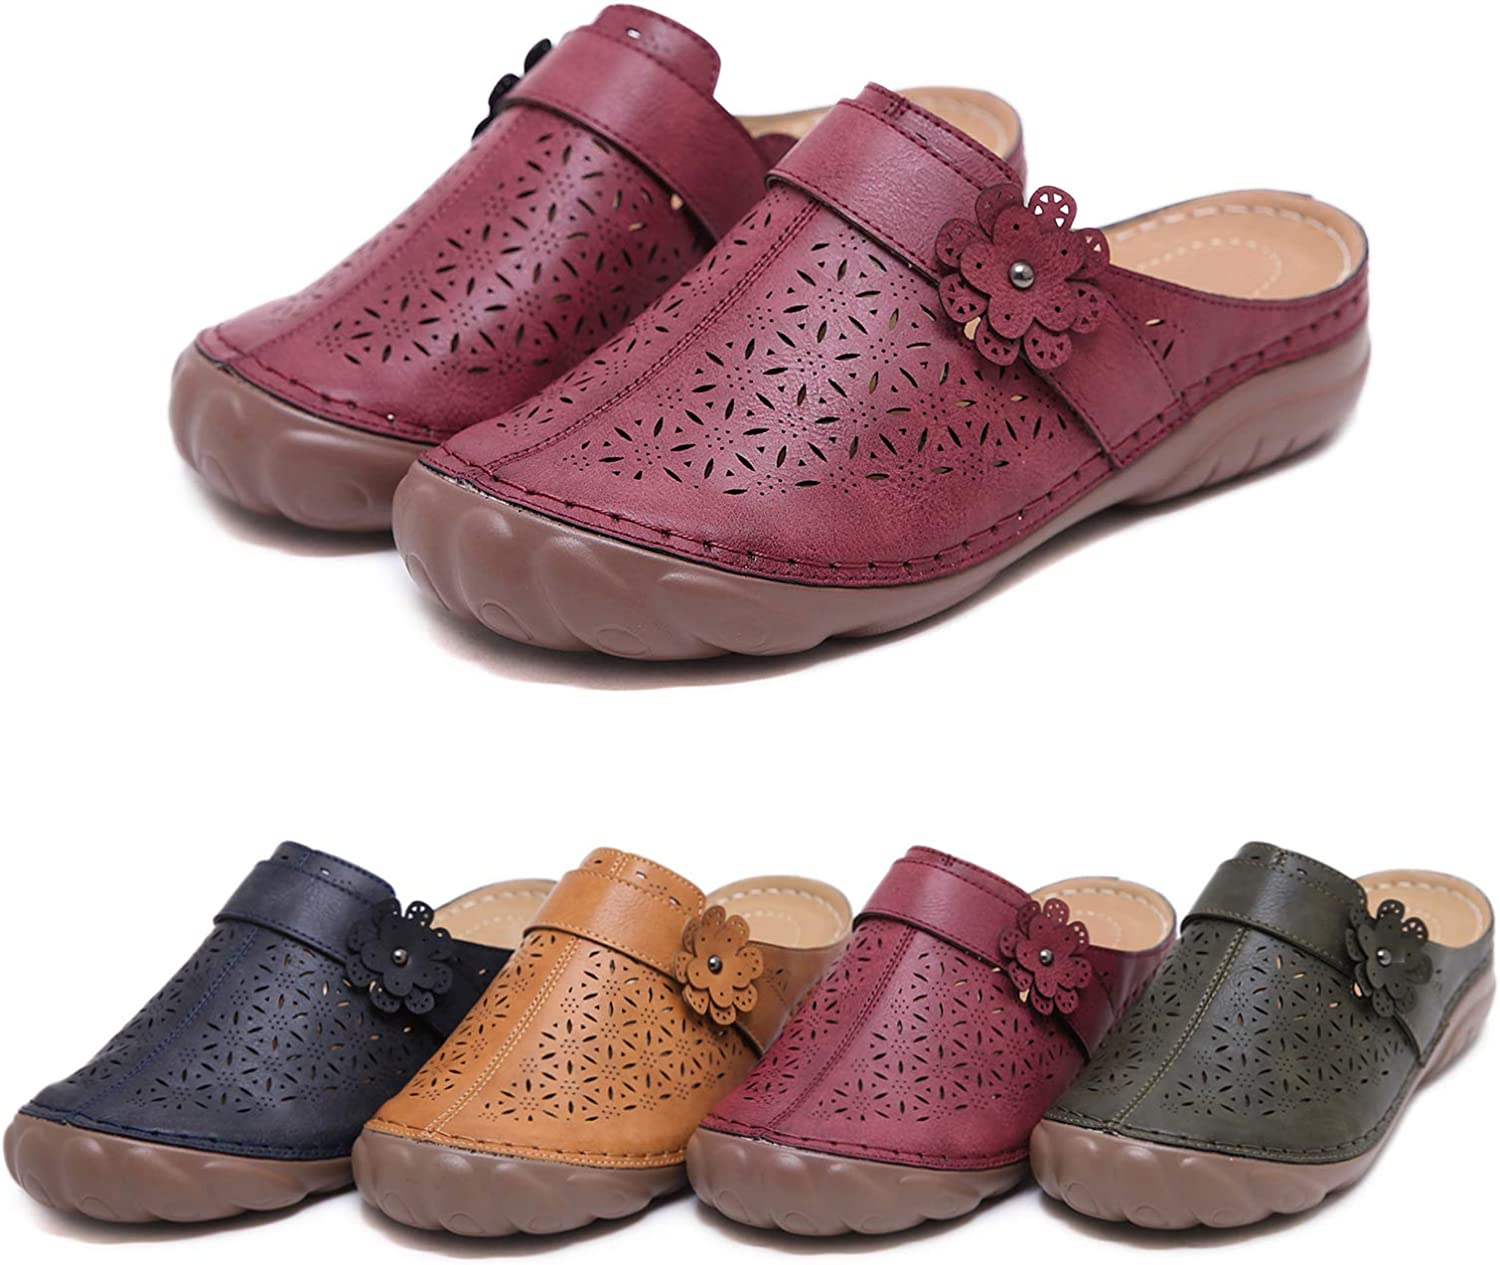 Solacozy Clogs Shoes for Women, Slip on Mules Casual Summer Slippers Handmade Clogs and Mules Soft Beach Sandals Ladies Flowers Summer Shoes